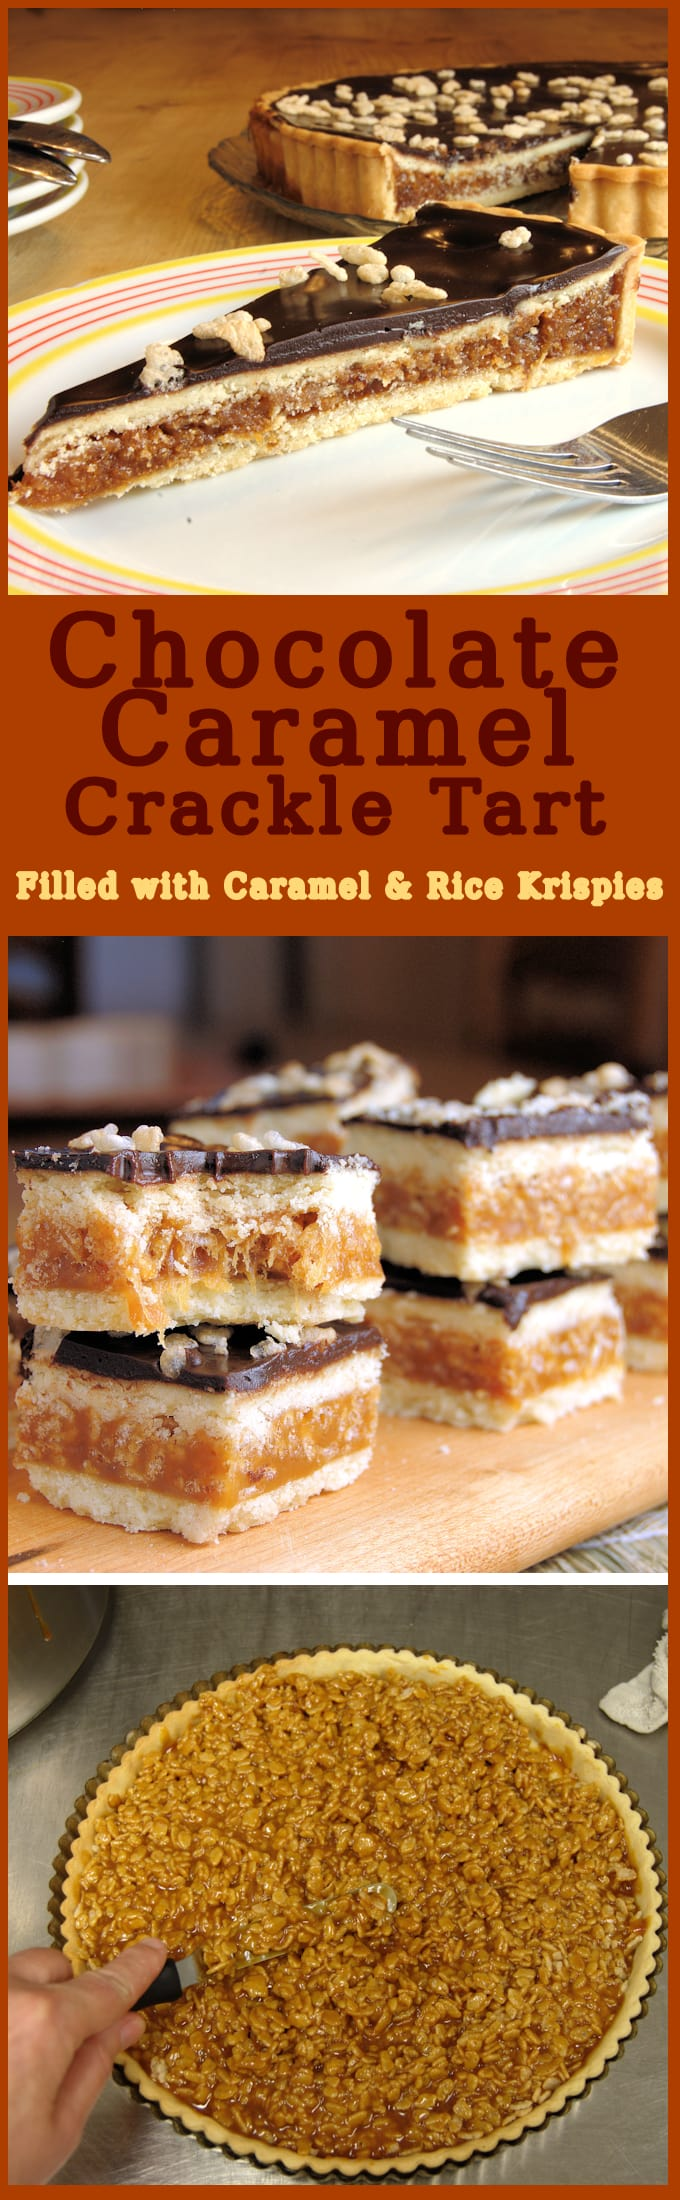 If you love Twix Bars you'll love chocolate caramel crackle tart. Buttery pastry filled with caramel & Rice Krispies & topped with chocolate ganache